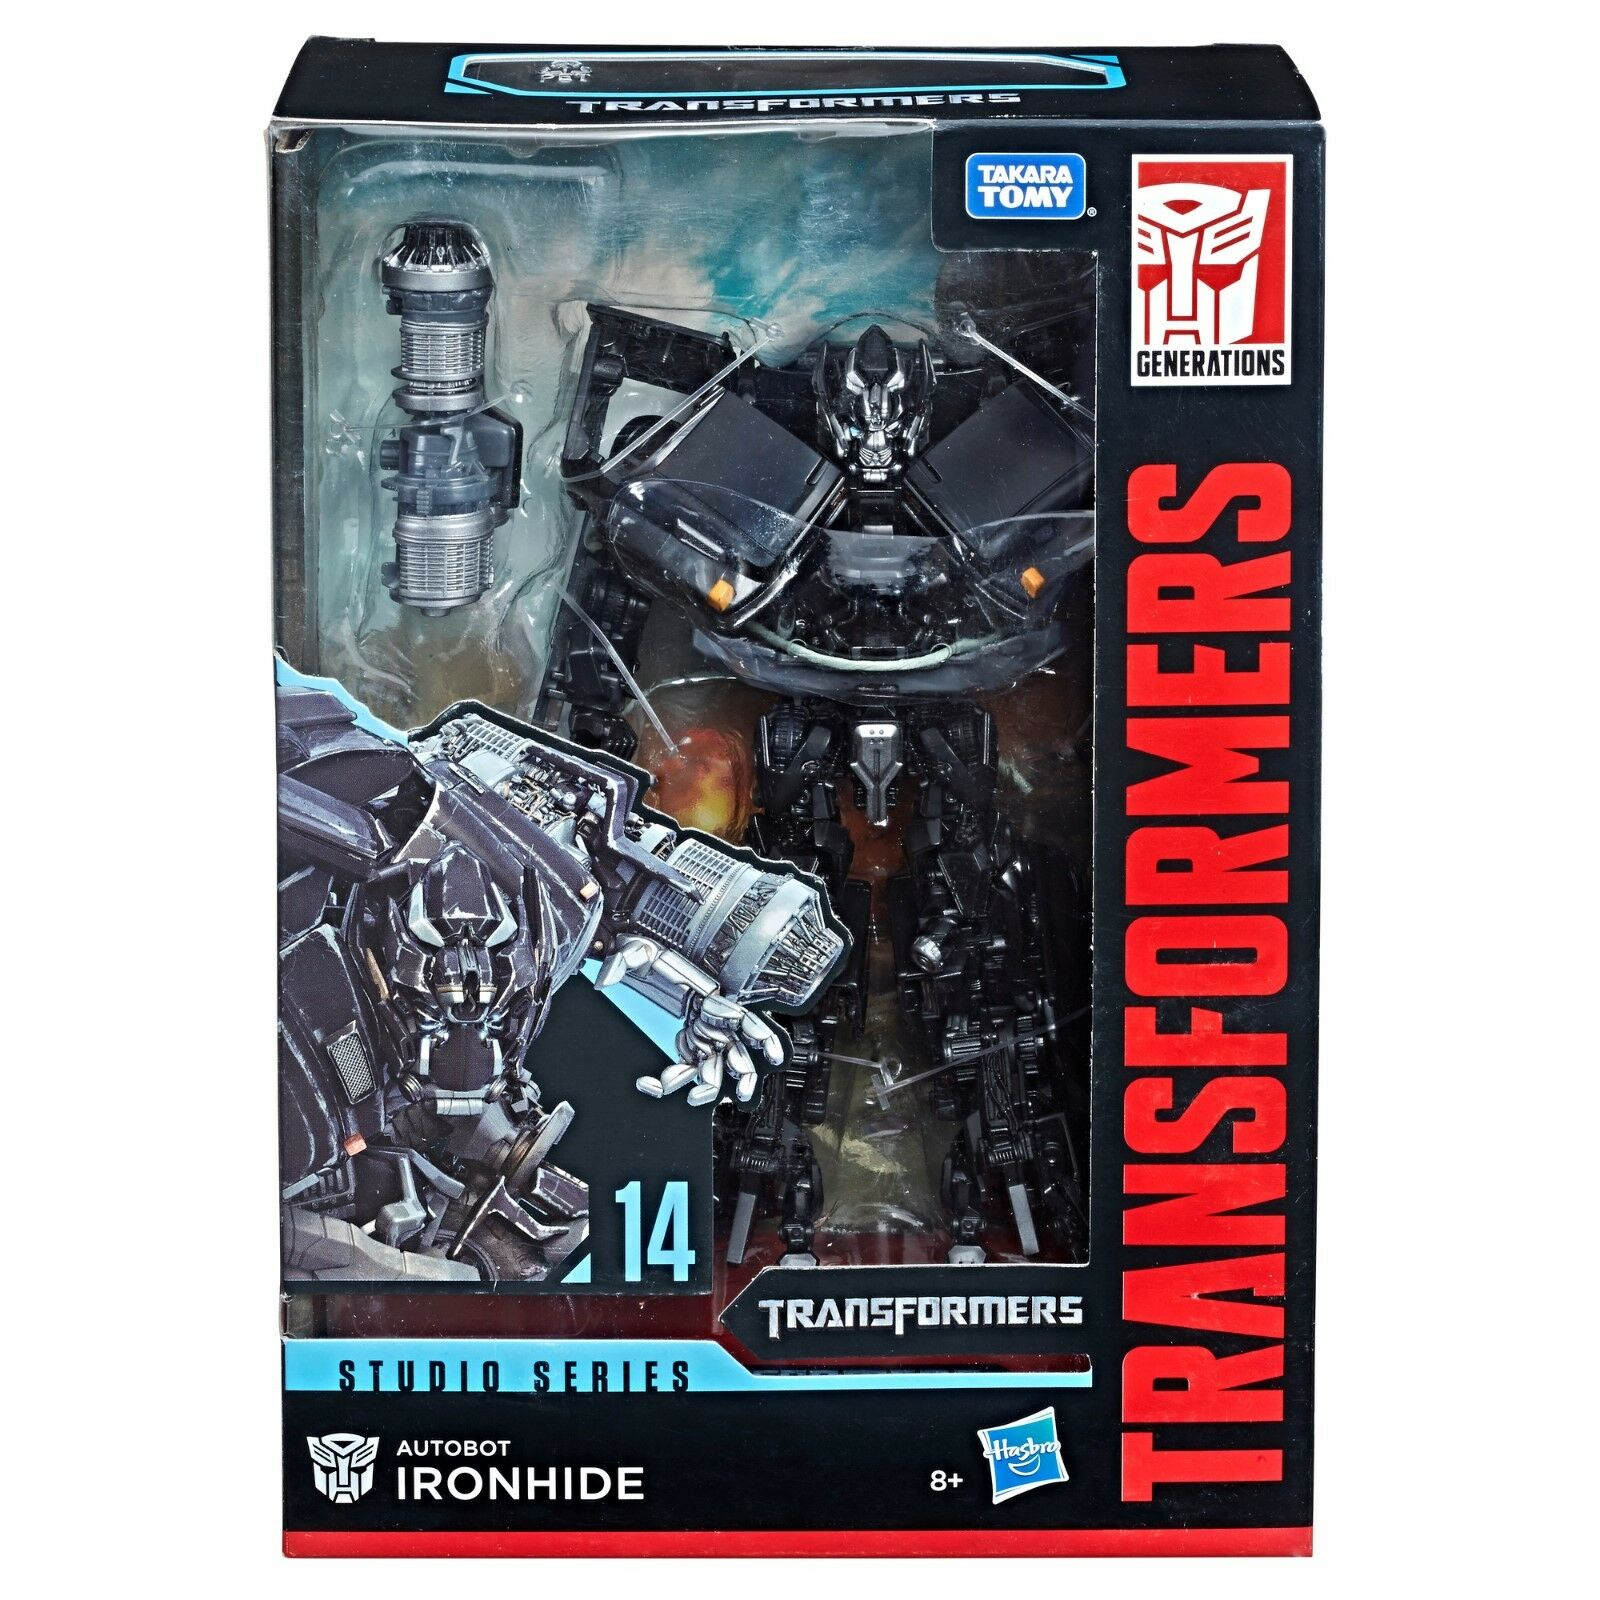 (In-Hand) Transformers Studio Series Voyager Class IRONHIDE Figure NEW